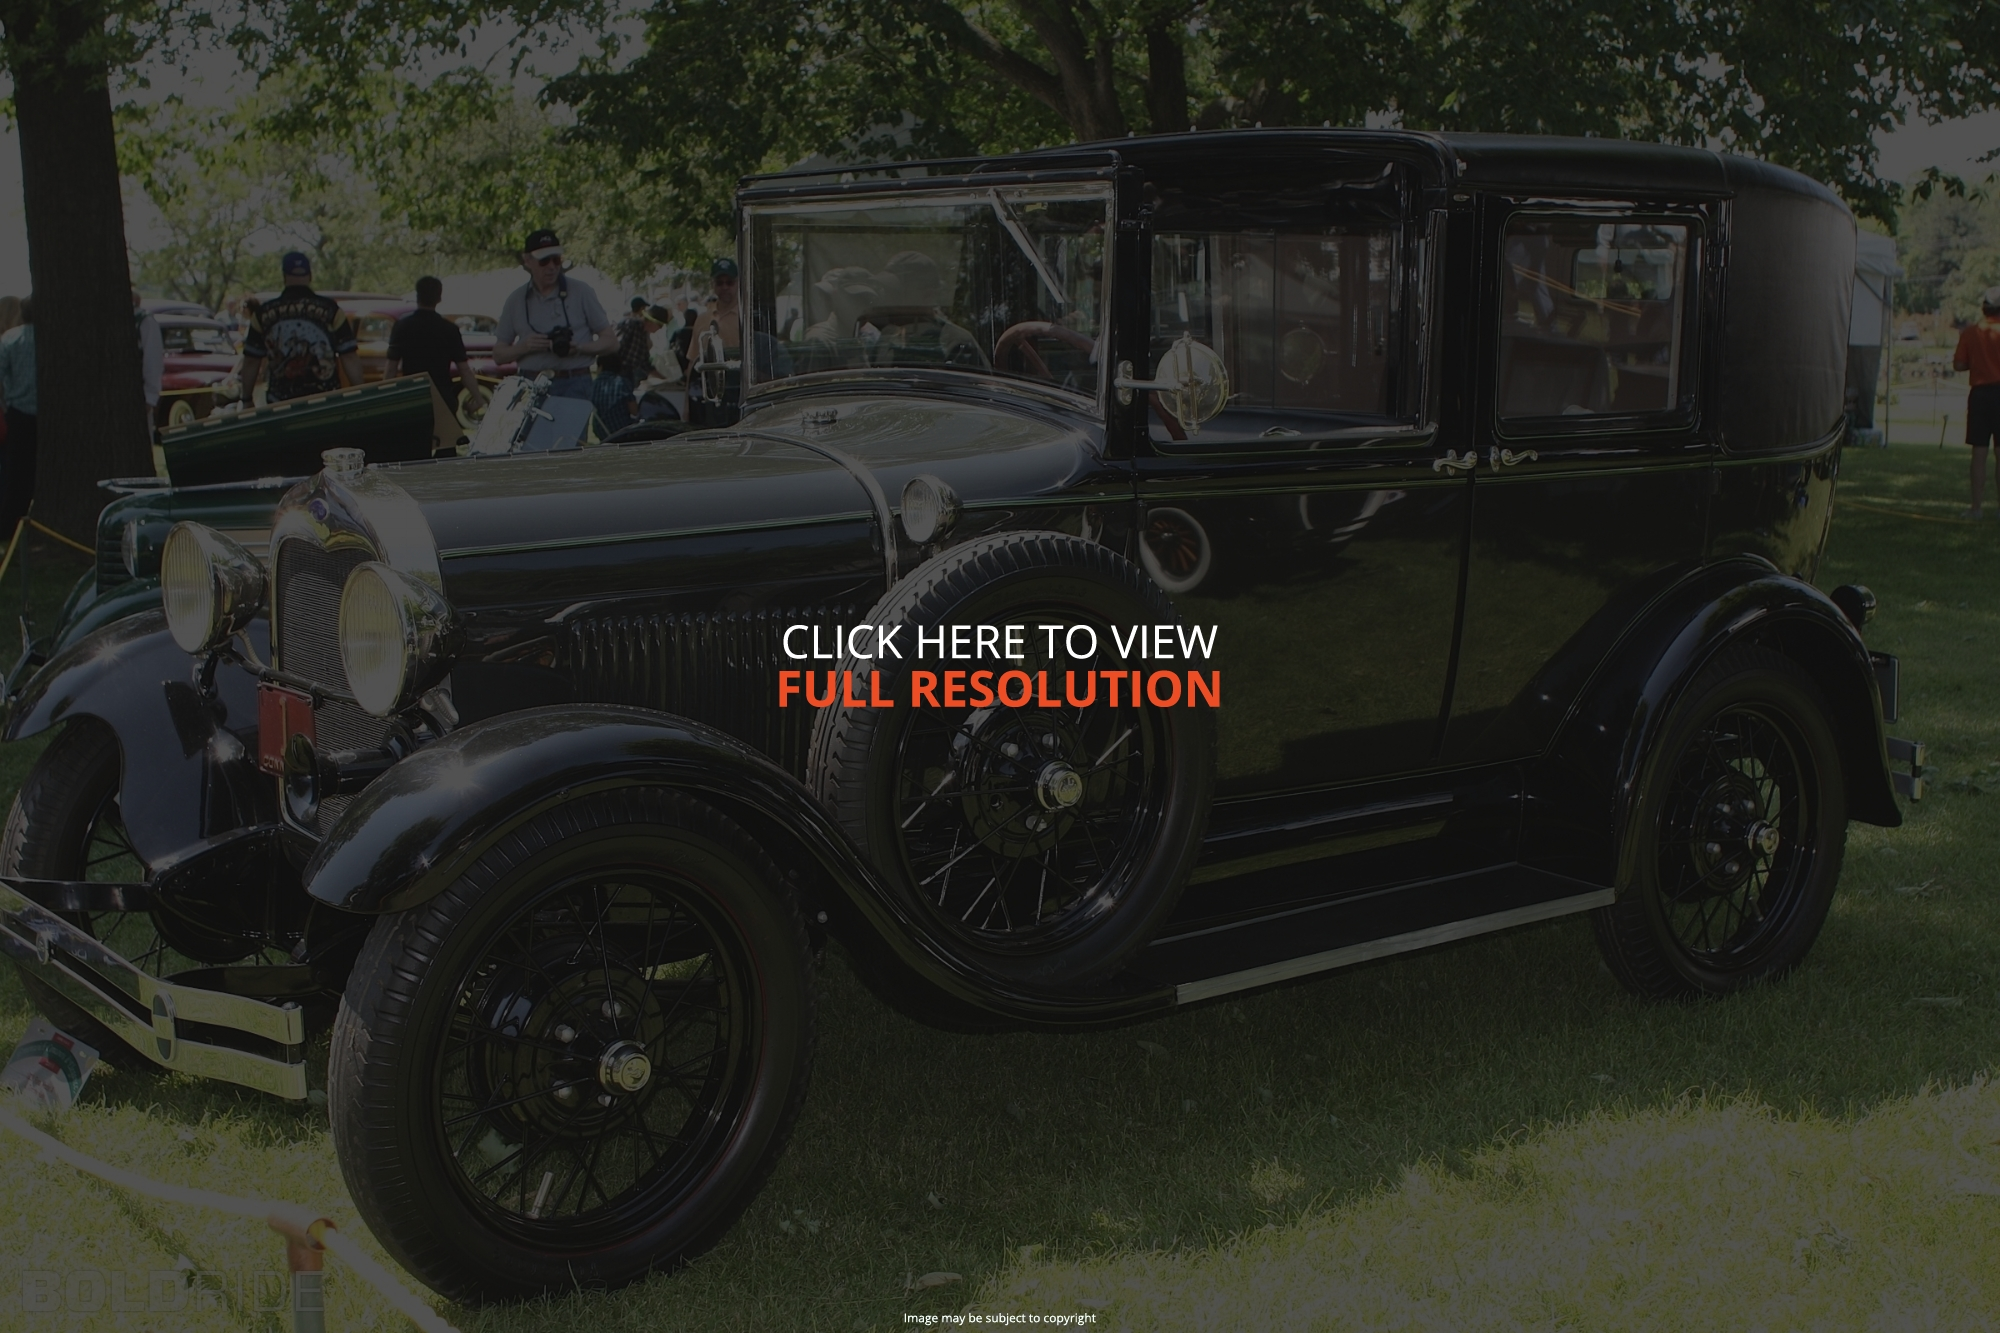 Ford Model A 1929 #5